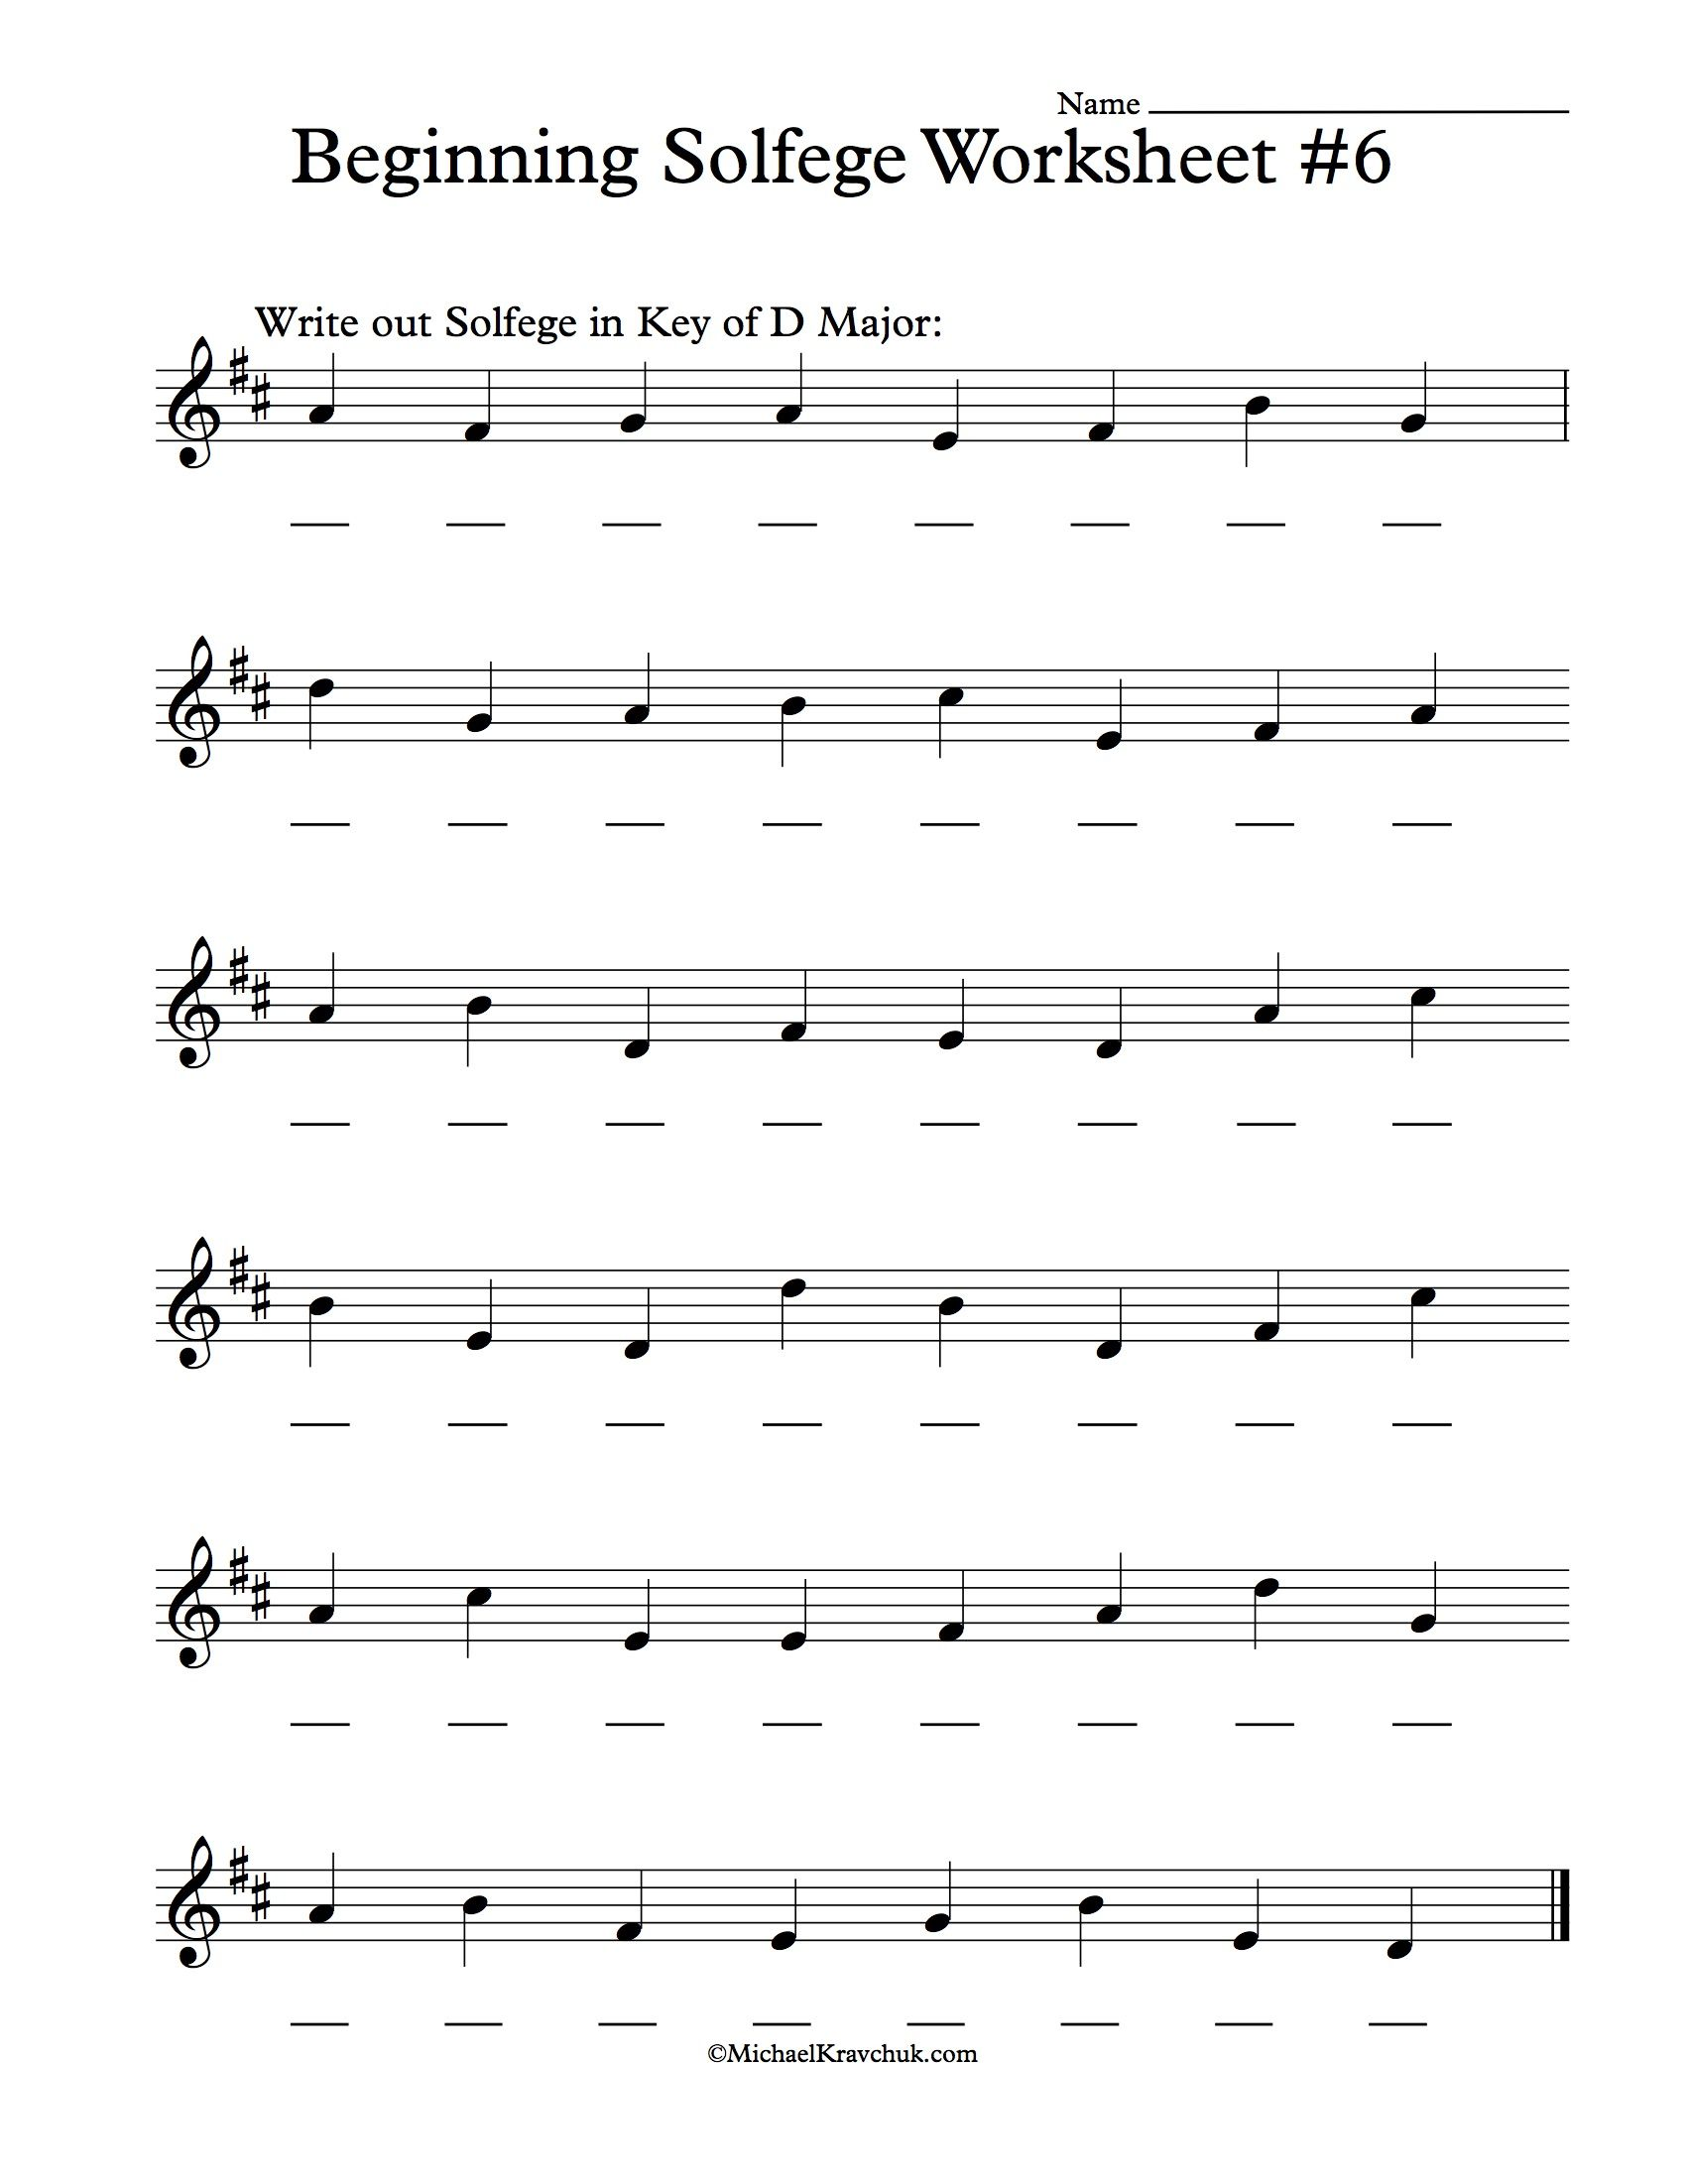 free solfege worksheets for classroom instruction worksheets and music worksheets. Black Bedroom Furniture Sets. Home Design Ideas